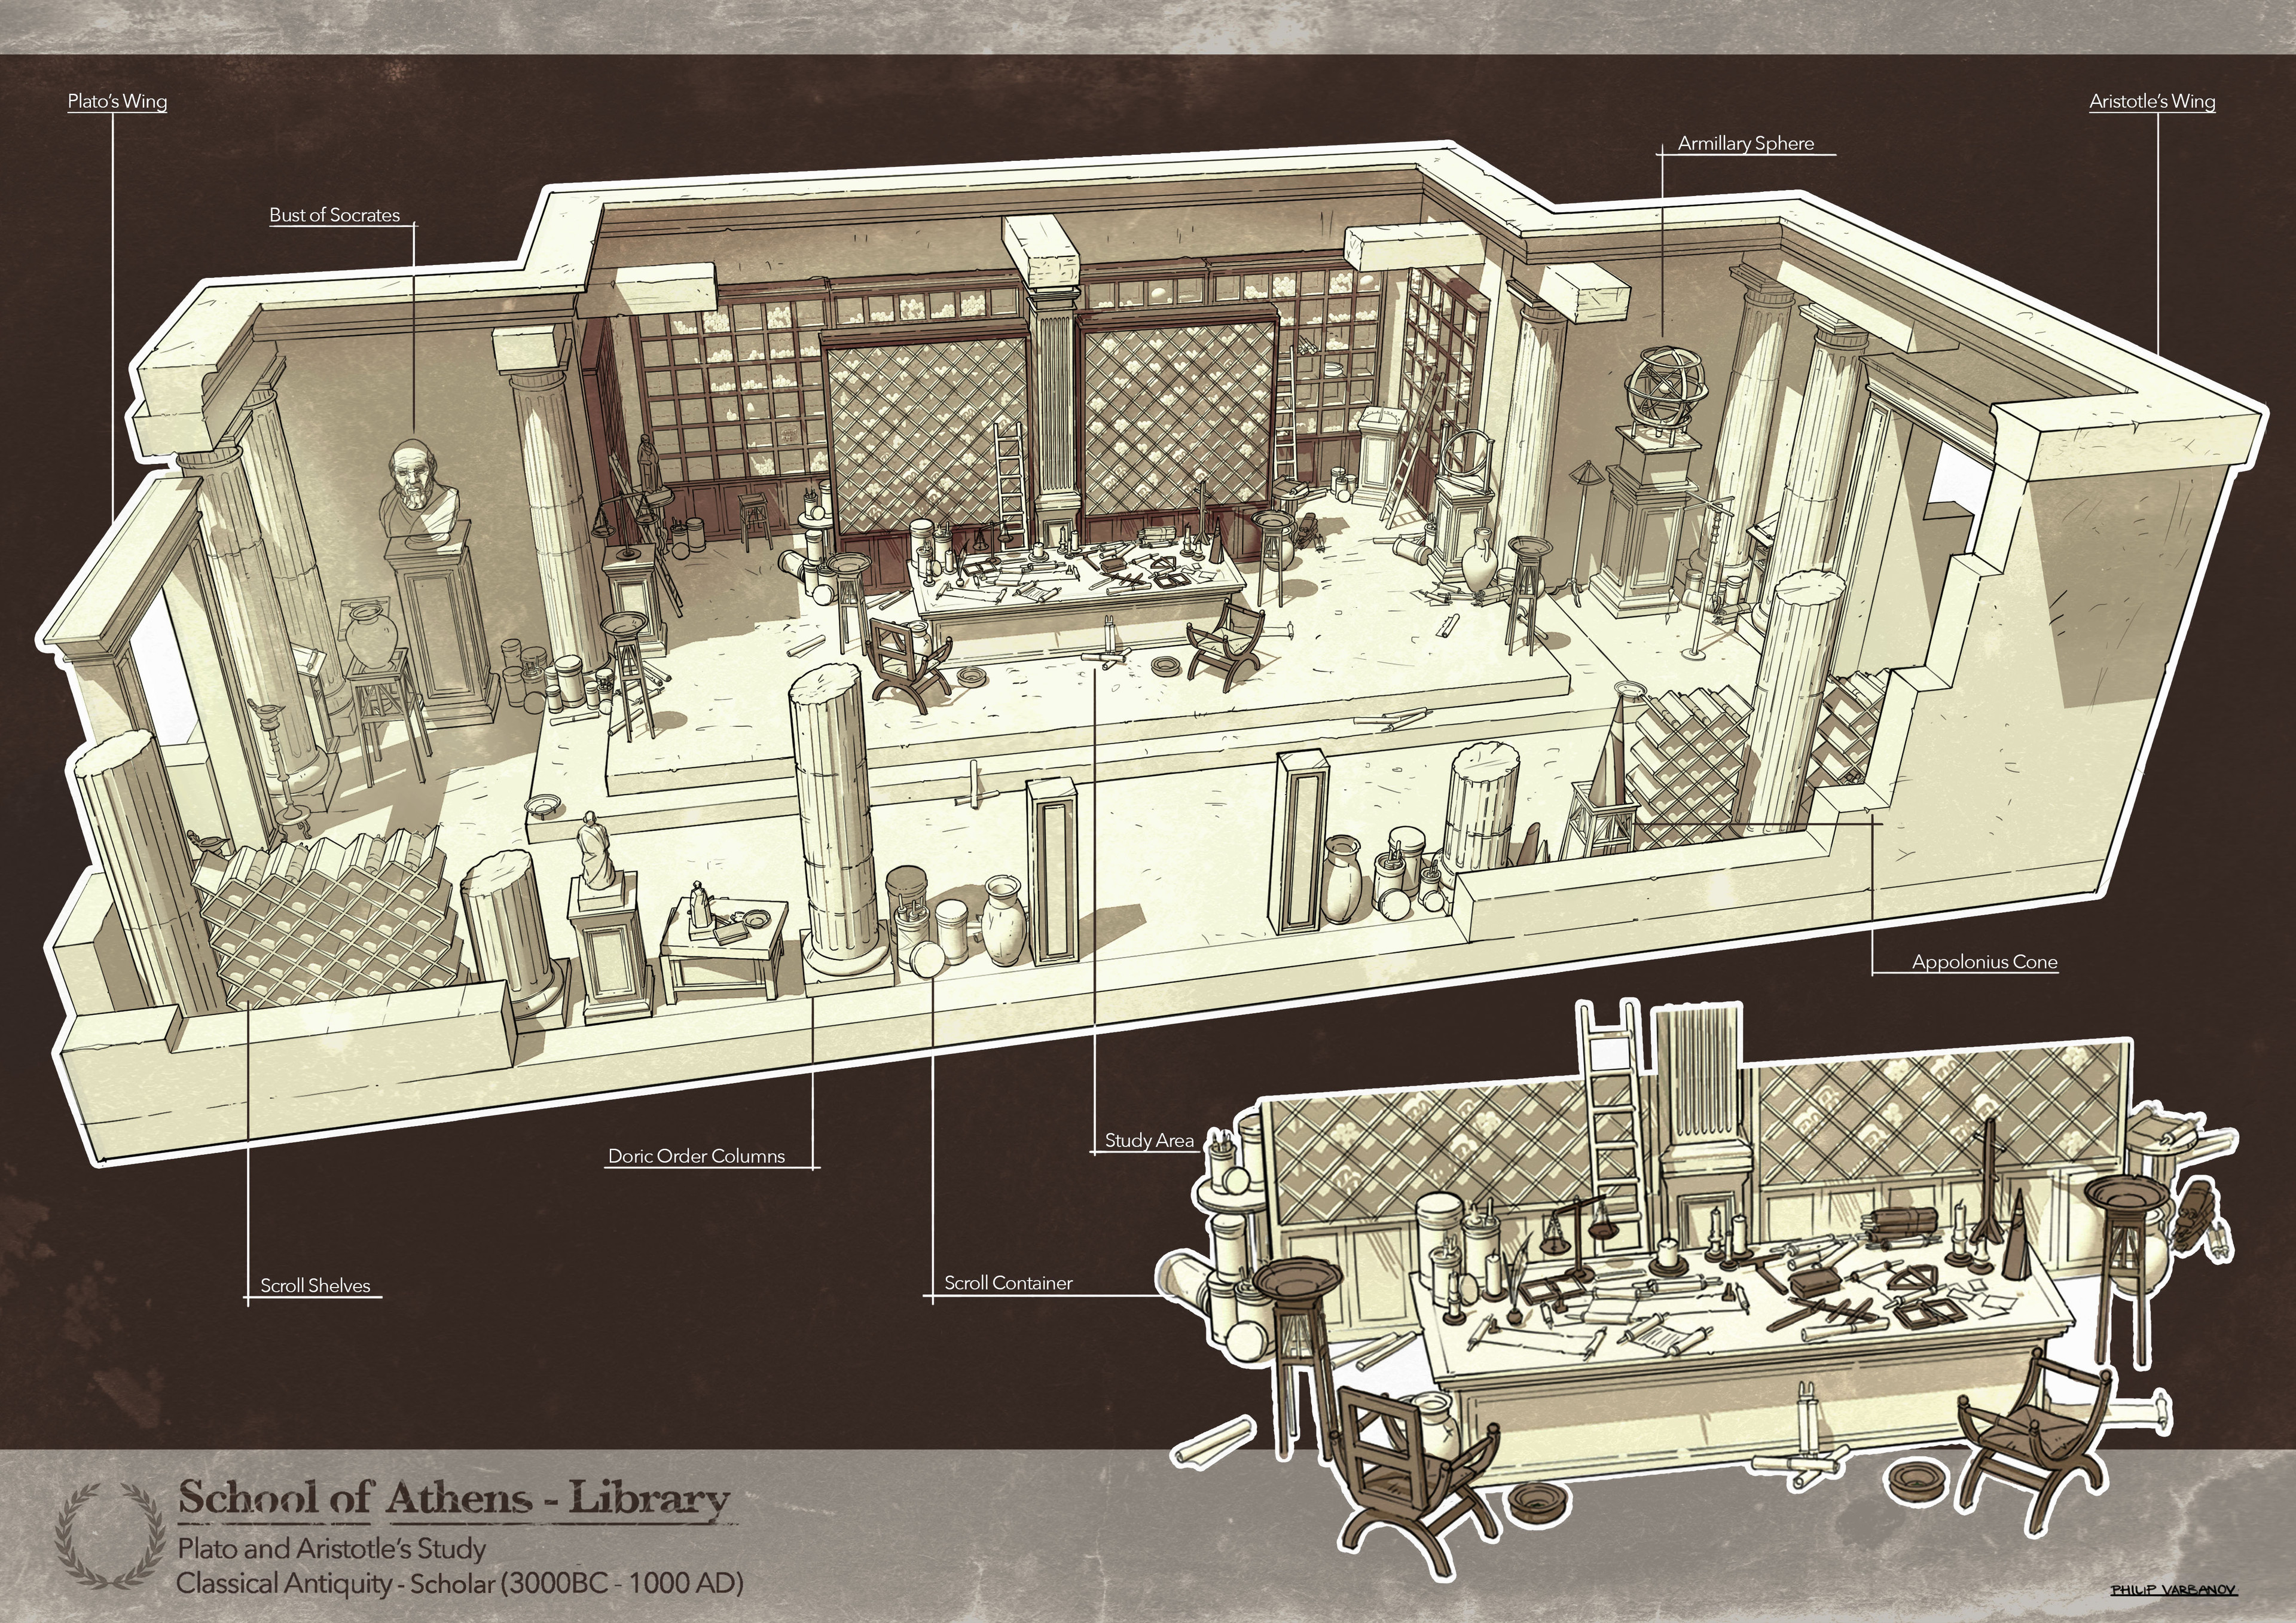 The library in which Aristotle and Plato discussed ideas